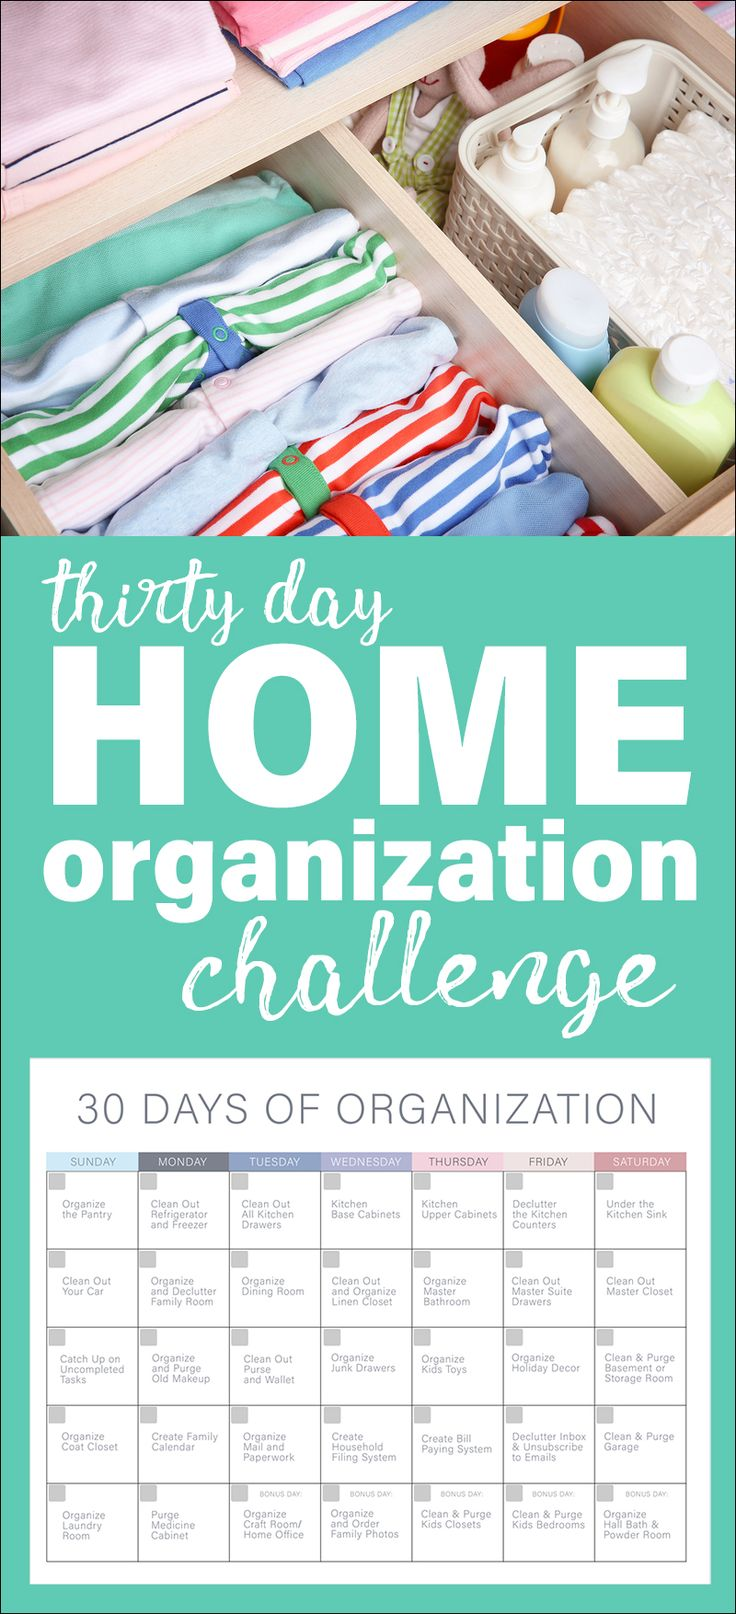 30 Days of Organization Challenge. Get your home and personal life organized this year with some tips and tricks, and a free organization calendar printable!